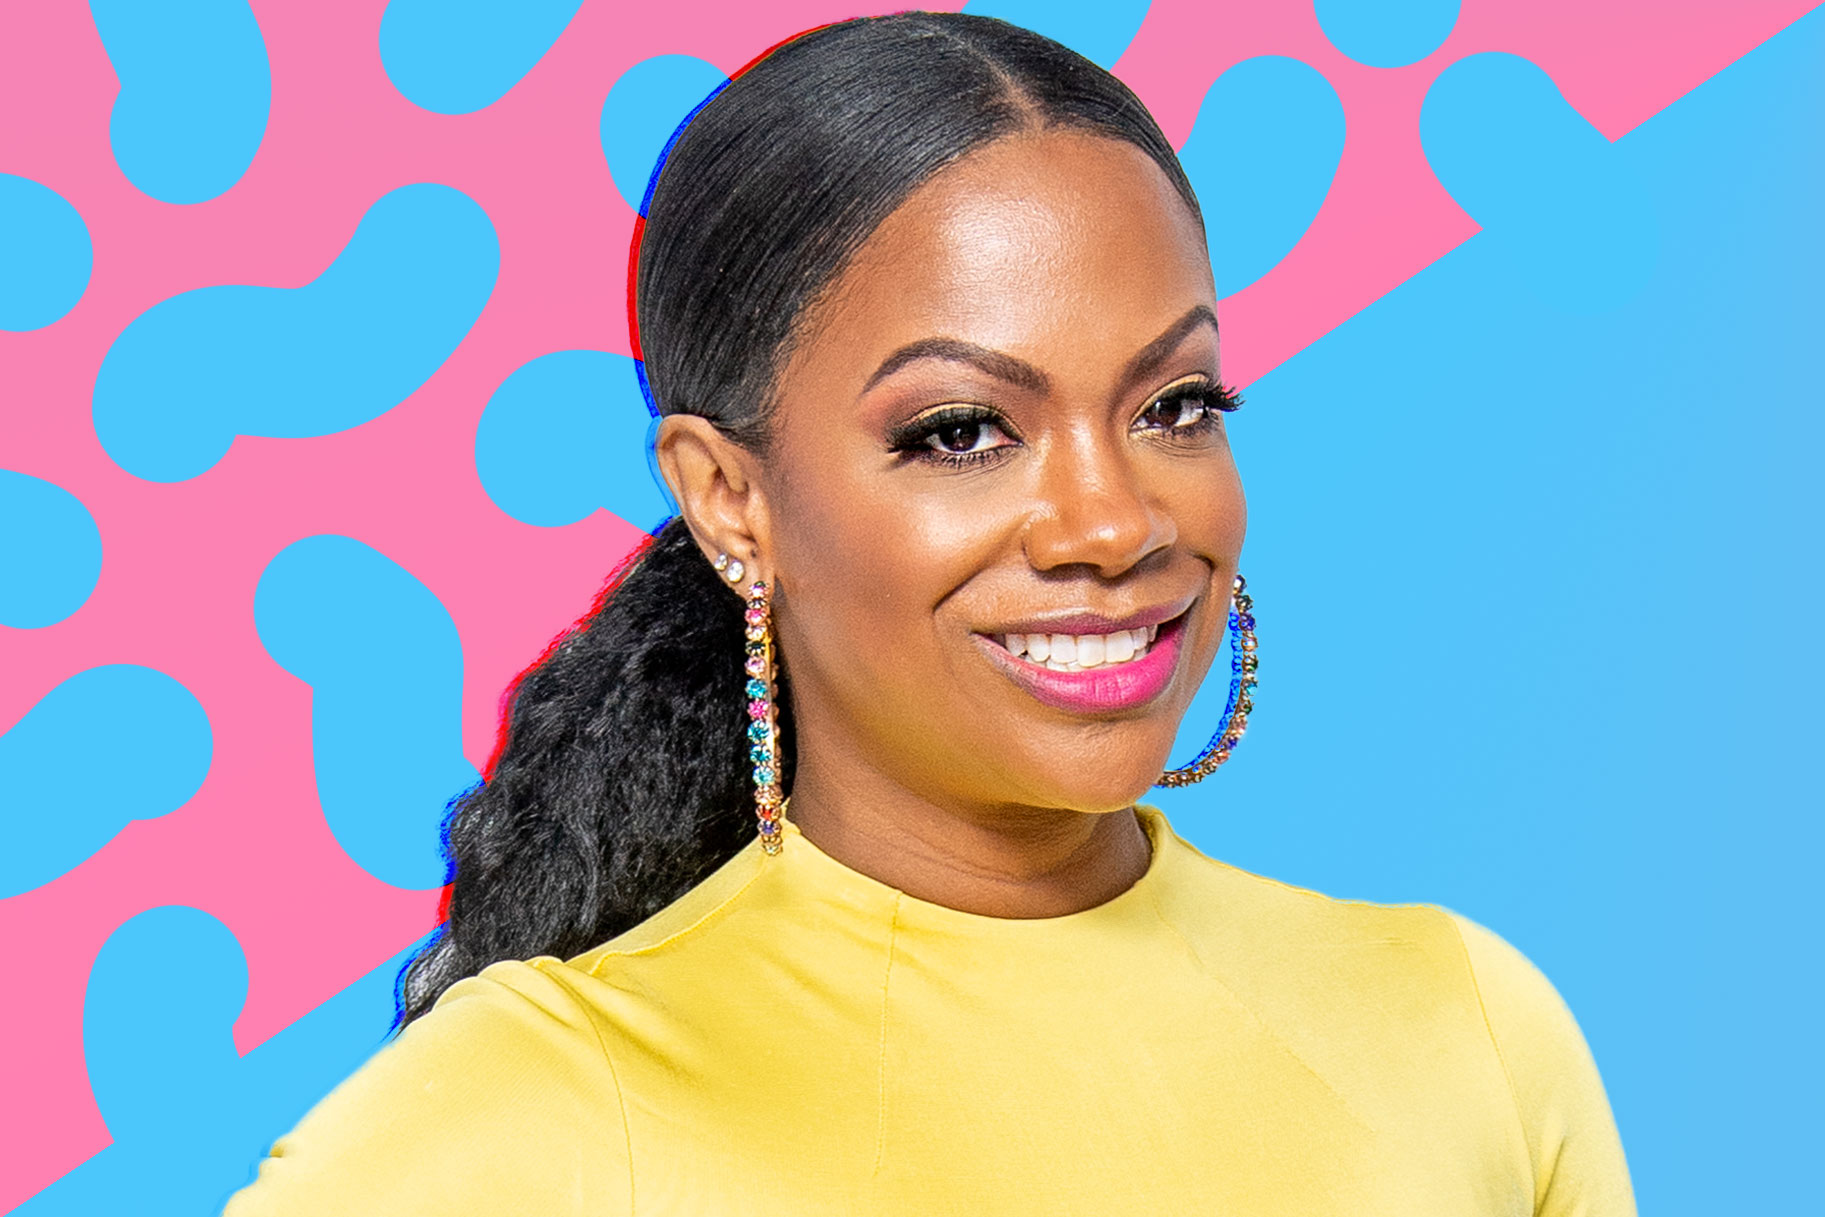 kandi-burruss-flaunts-the-luscious-yacht-life-shes-living-with-todd-tucker-in-thailand-for-their-5th-anniversary